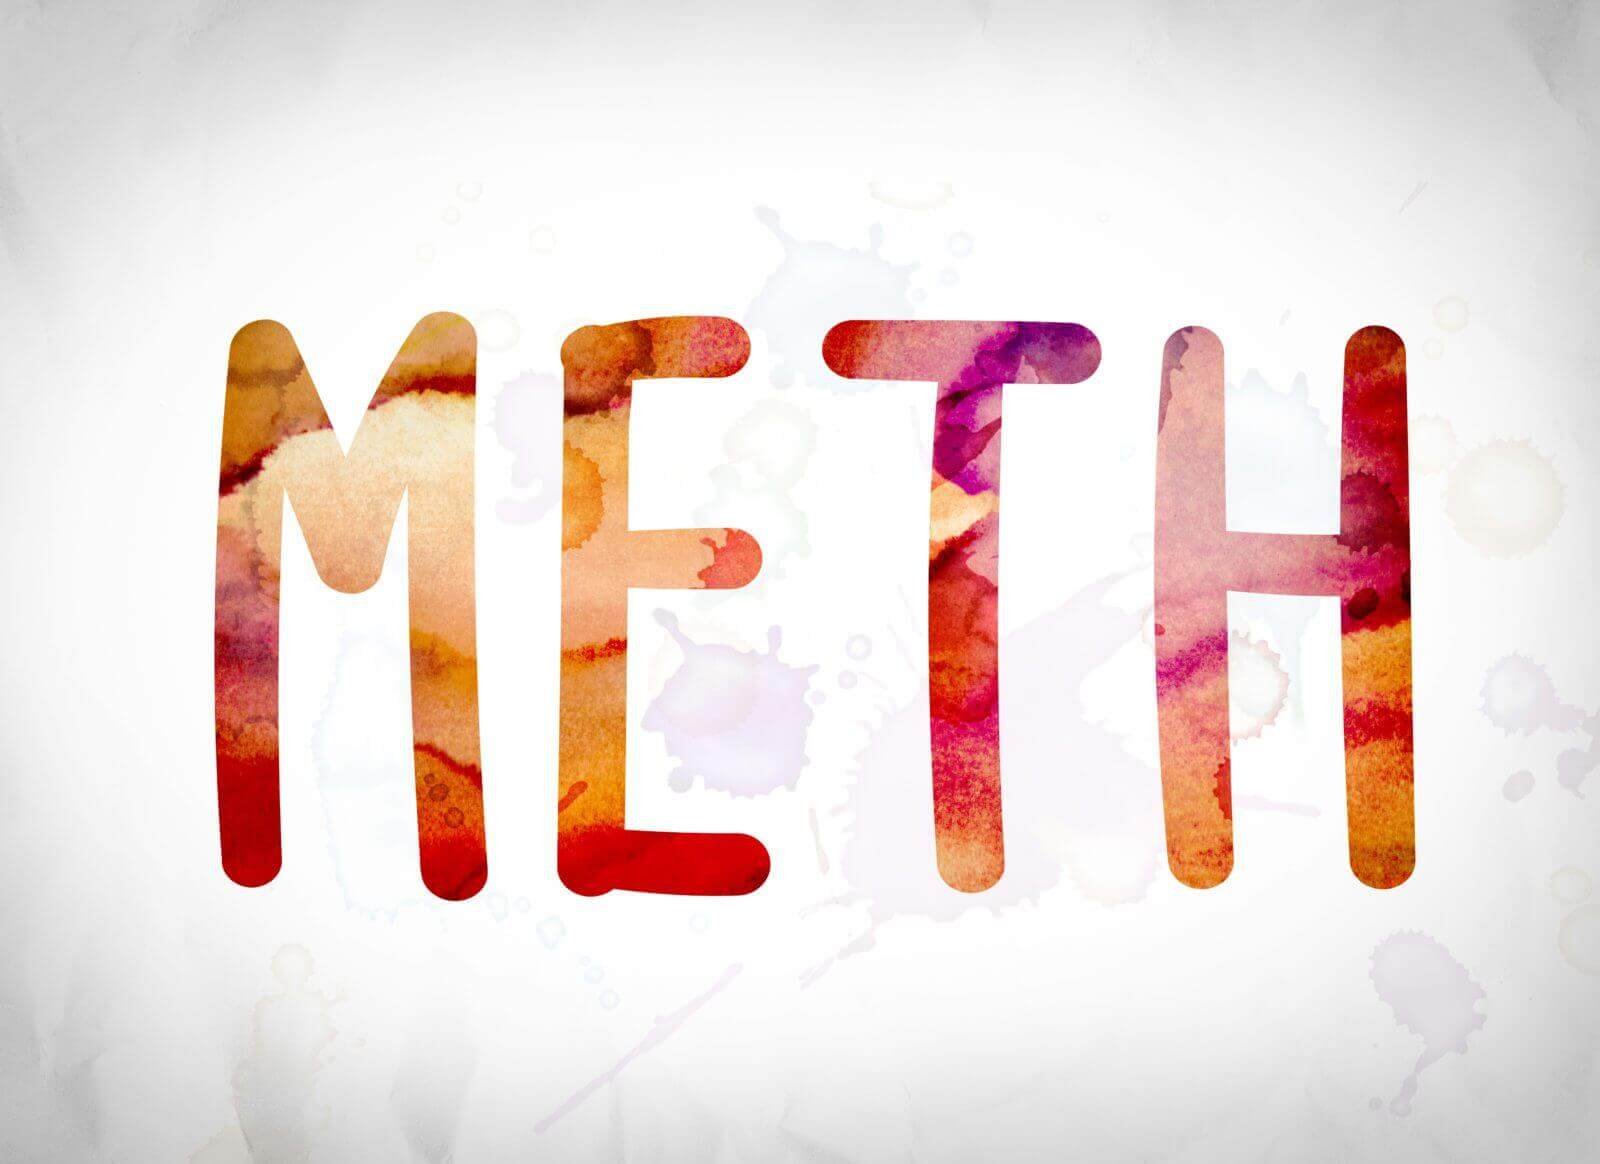 Meth: Effects, Addiction, Abuse and Treatment - Rehab Spot